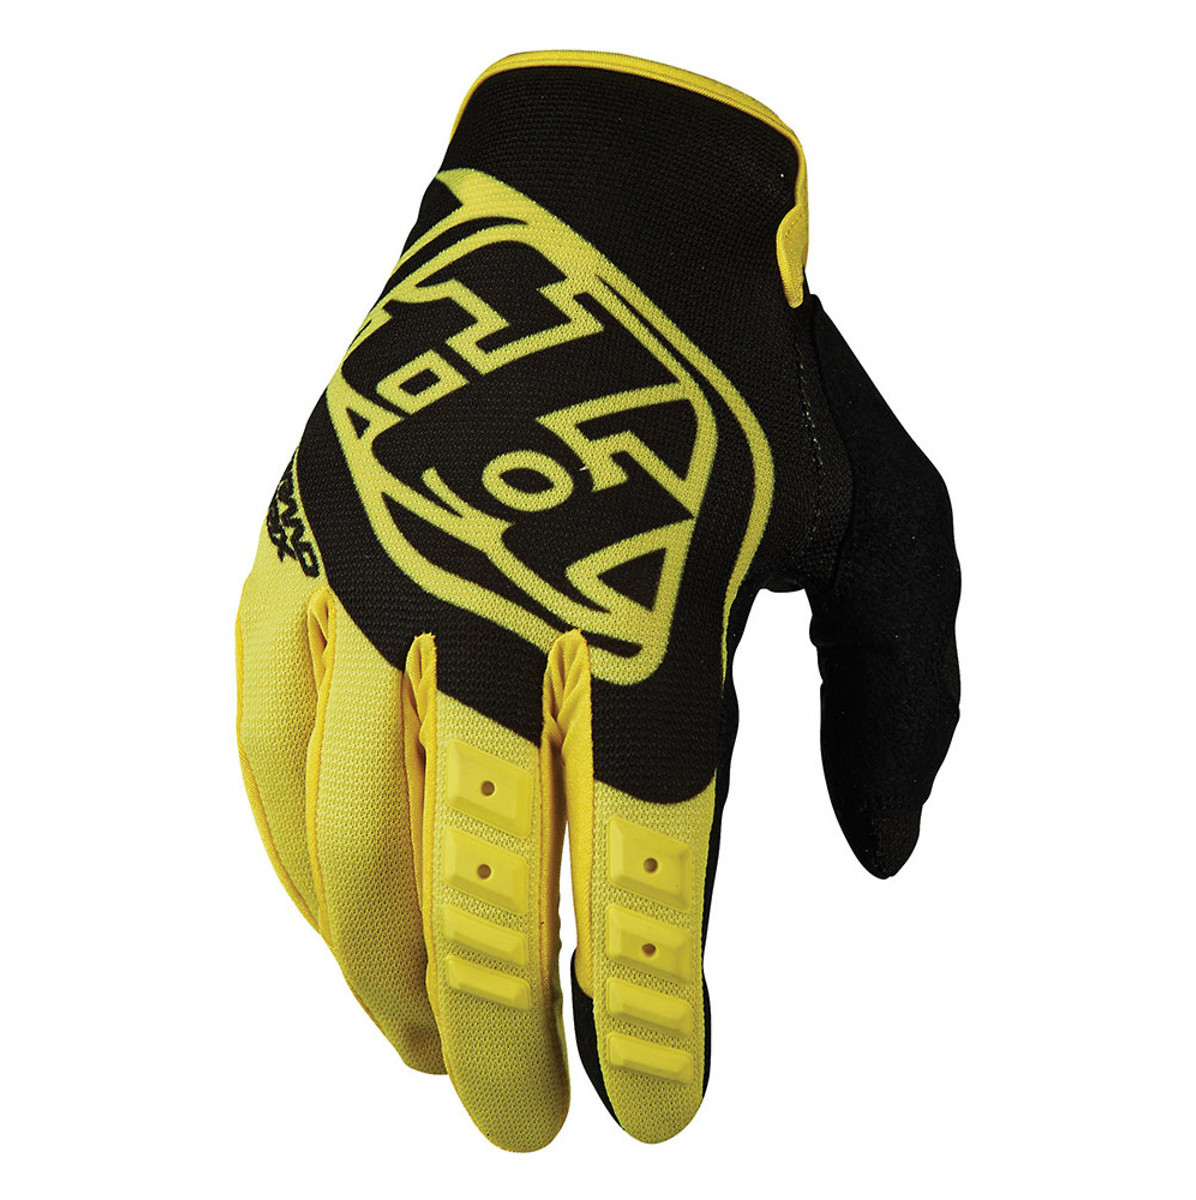 TLD GP Glove - Yellow